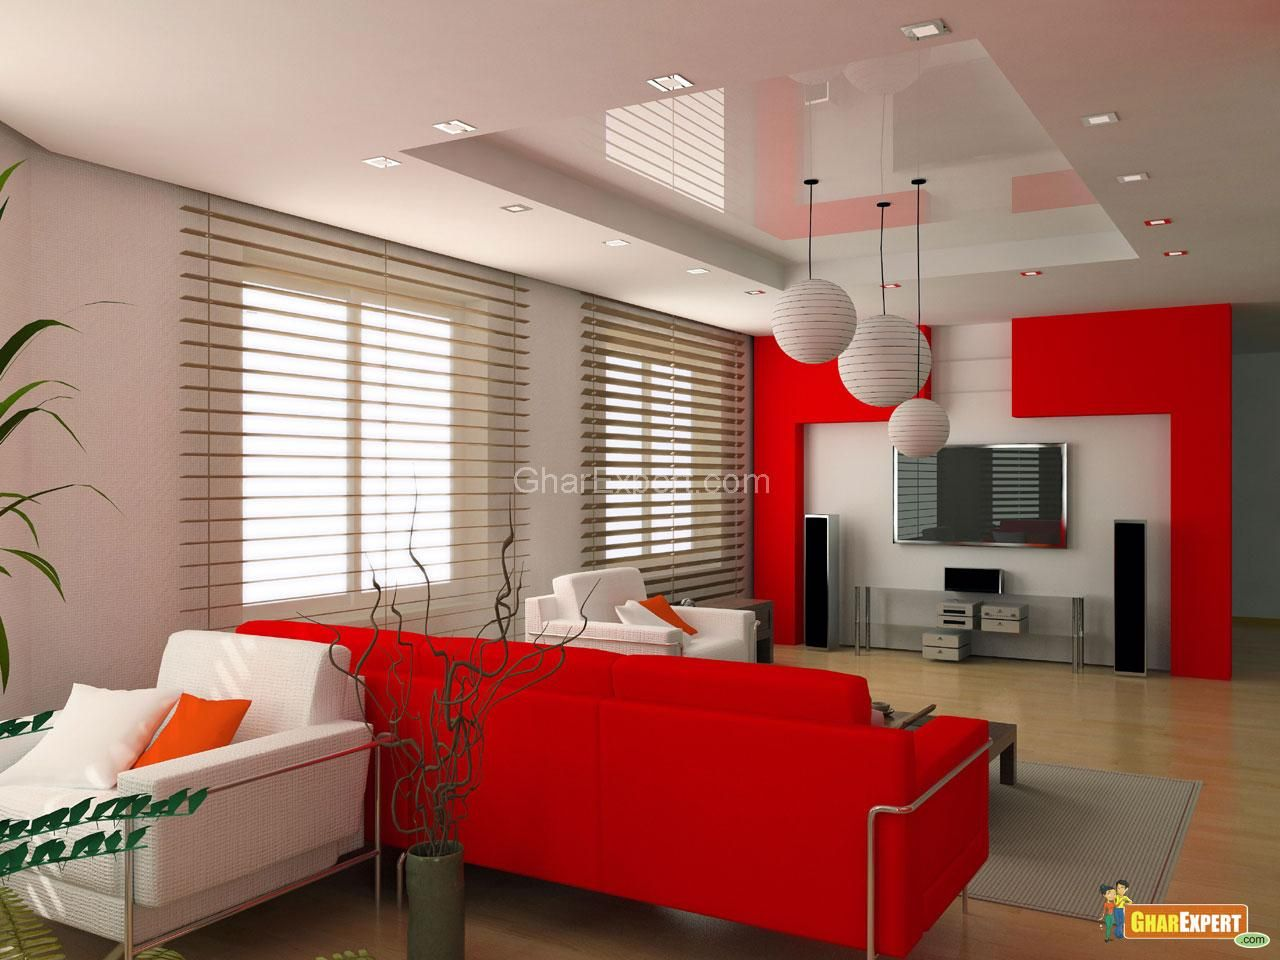 Bedroom Wall Paint Design Ideas Cool Nerolac Bedroom Paint Combinations  Design Ideas 20172018 Design Decoration